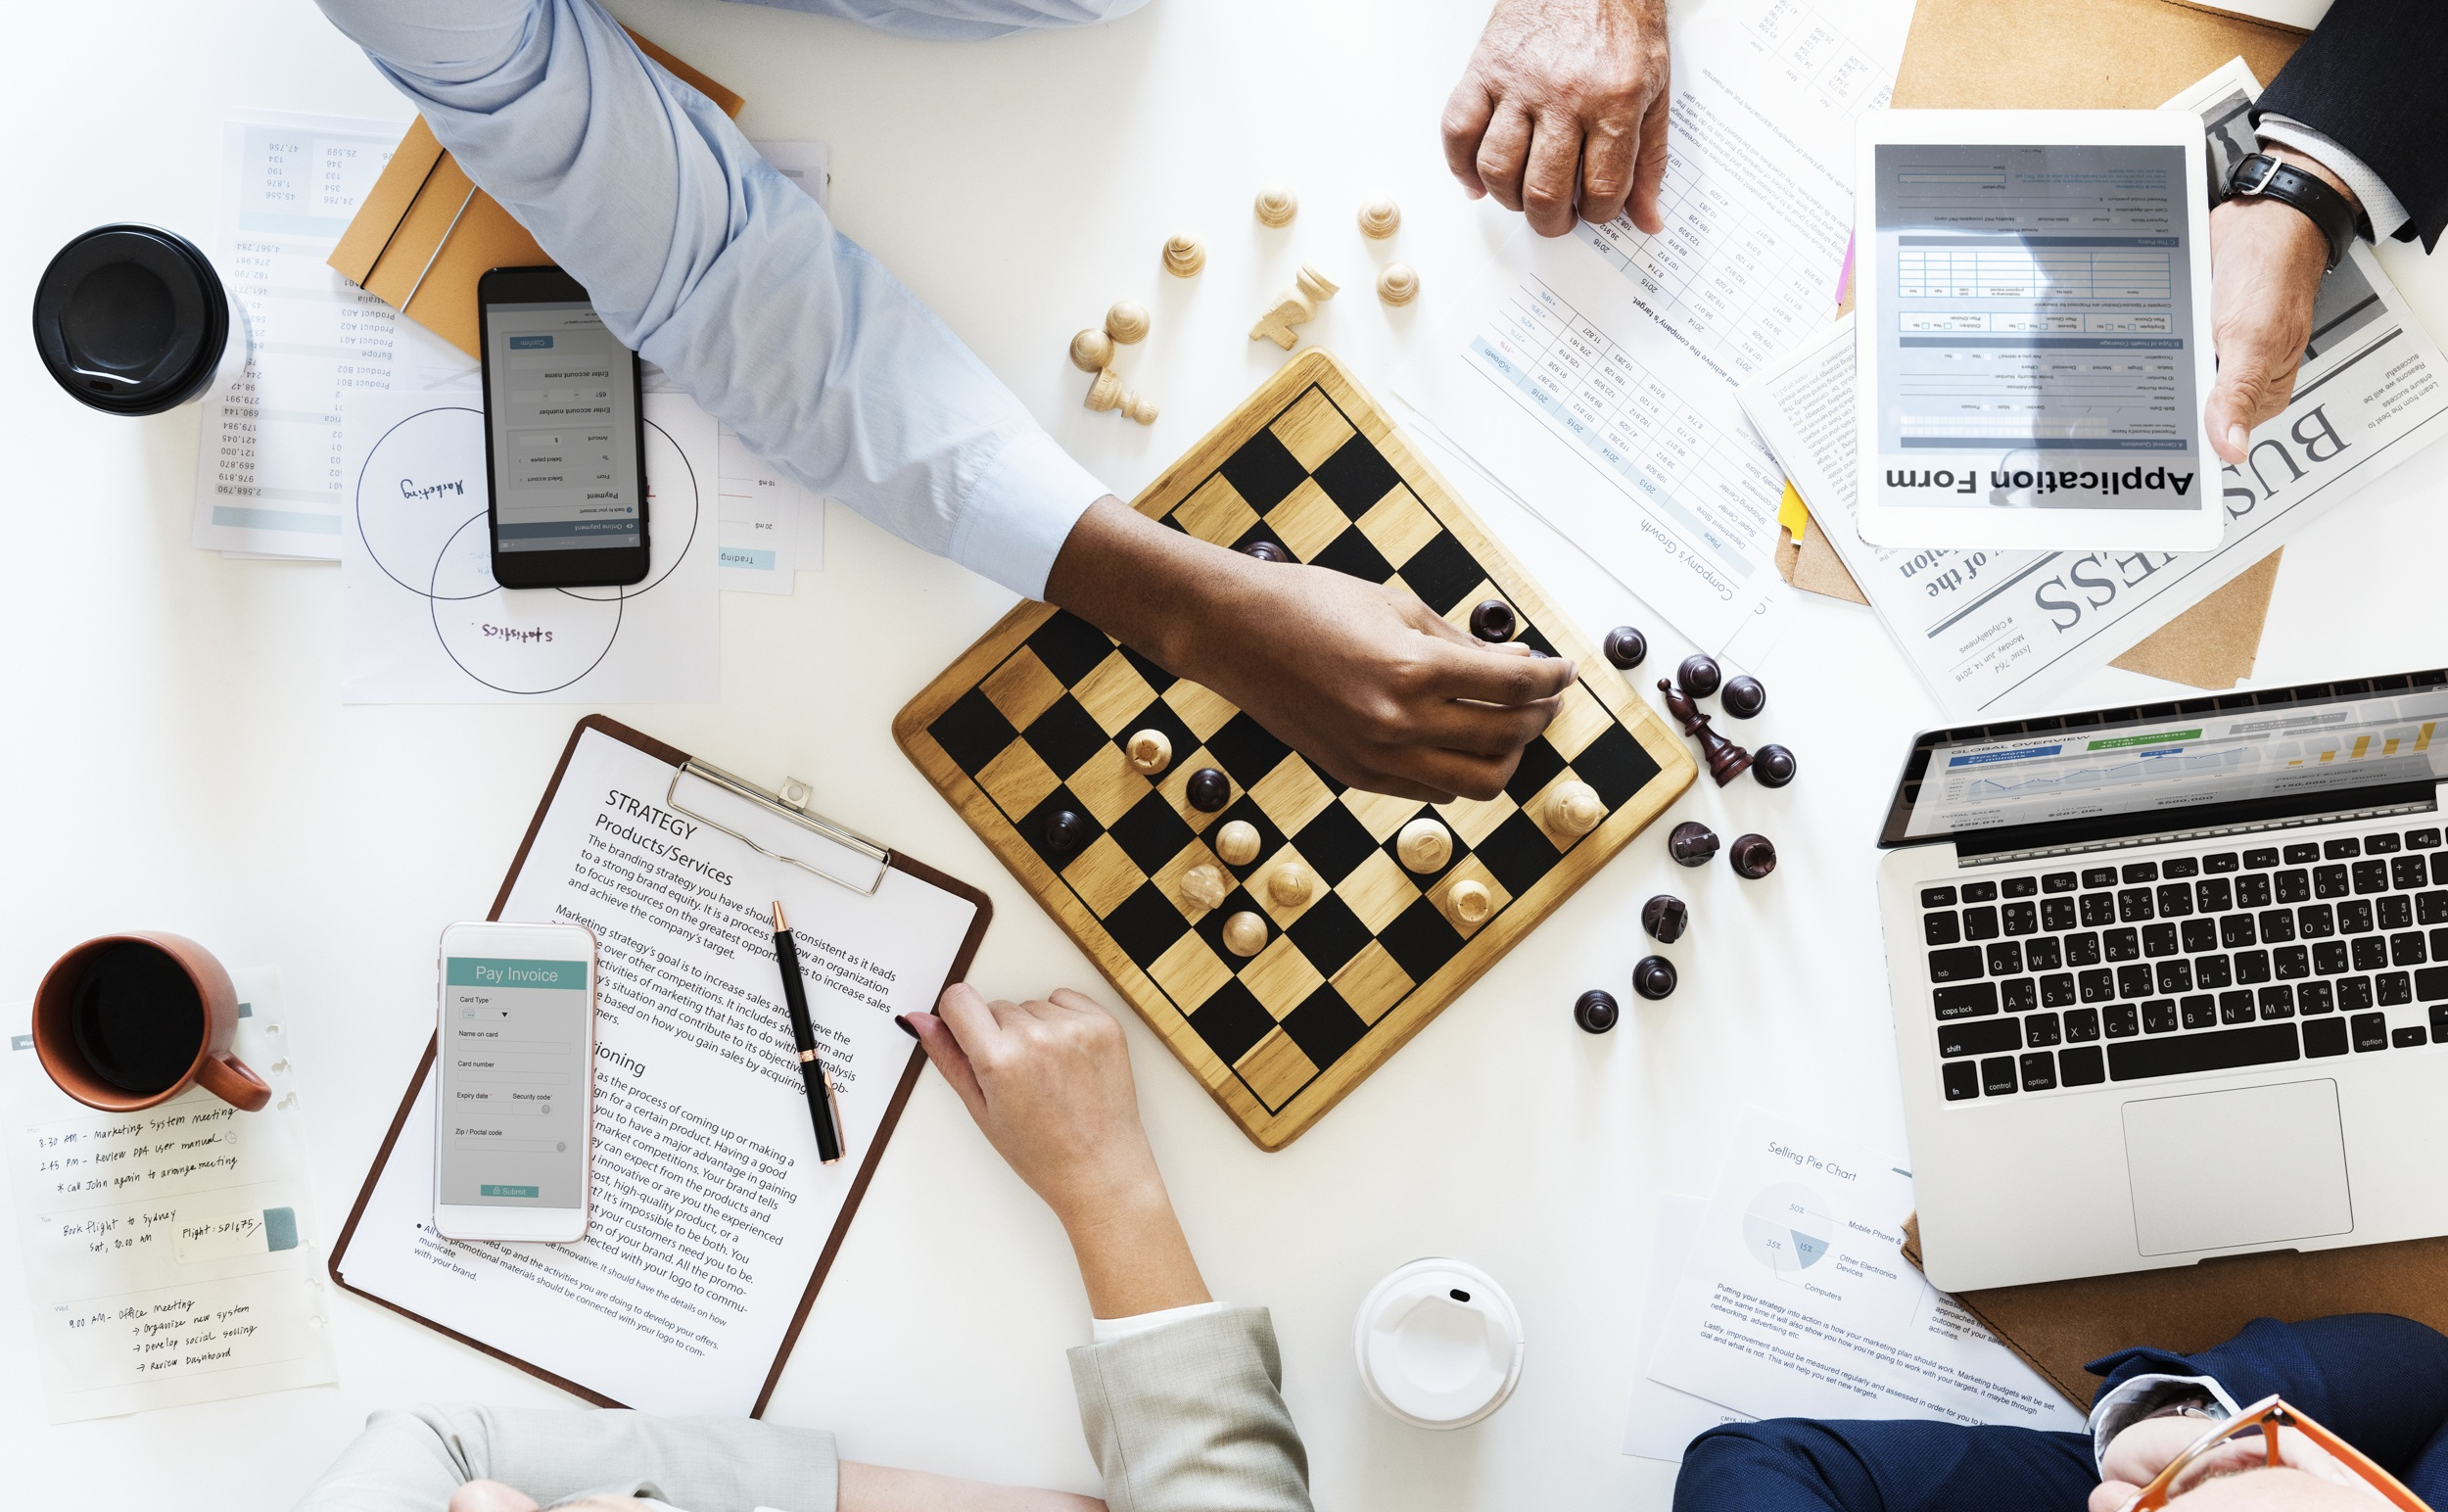 game of chess being played on business table